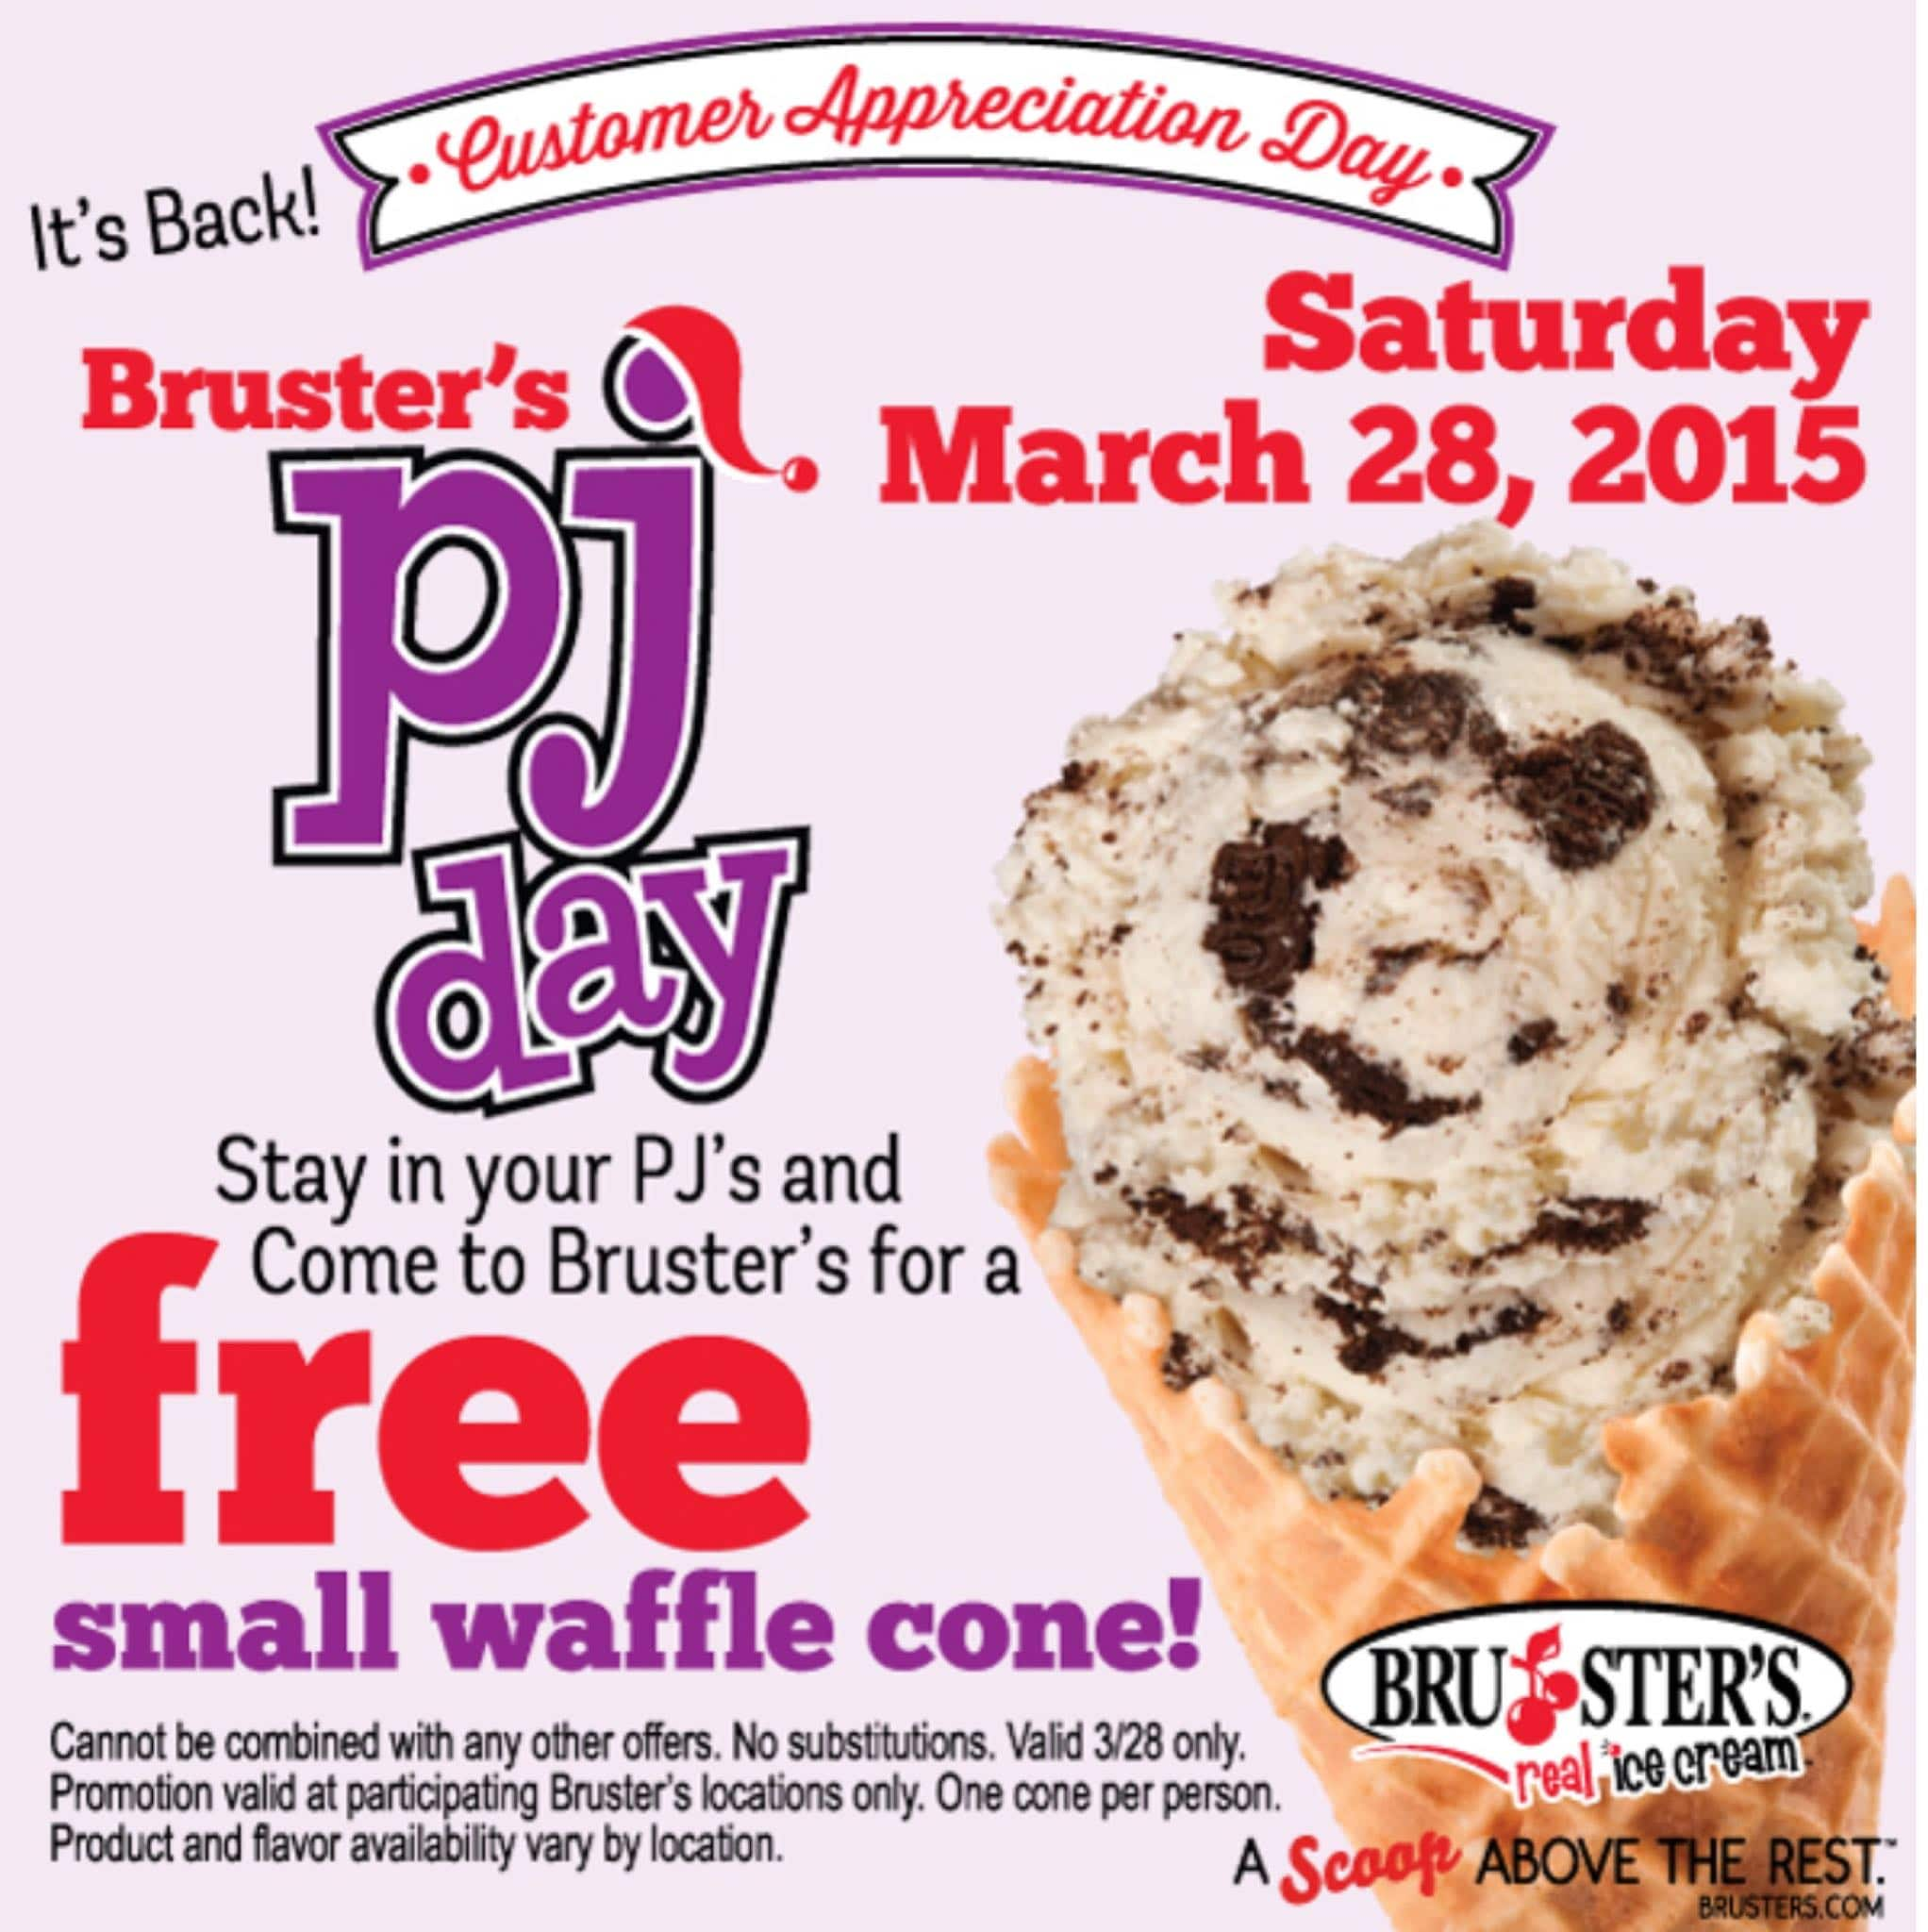 Free Small Waffle Cone at Bruster's When You Wear Your PJ's on 3/28